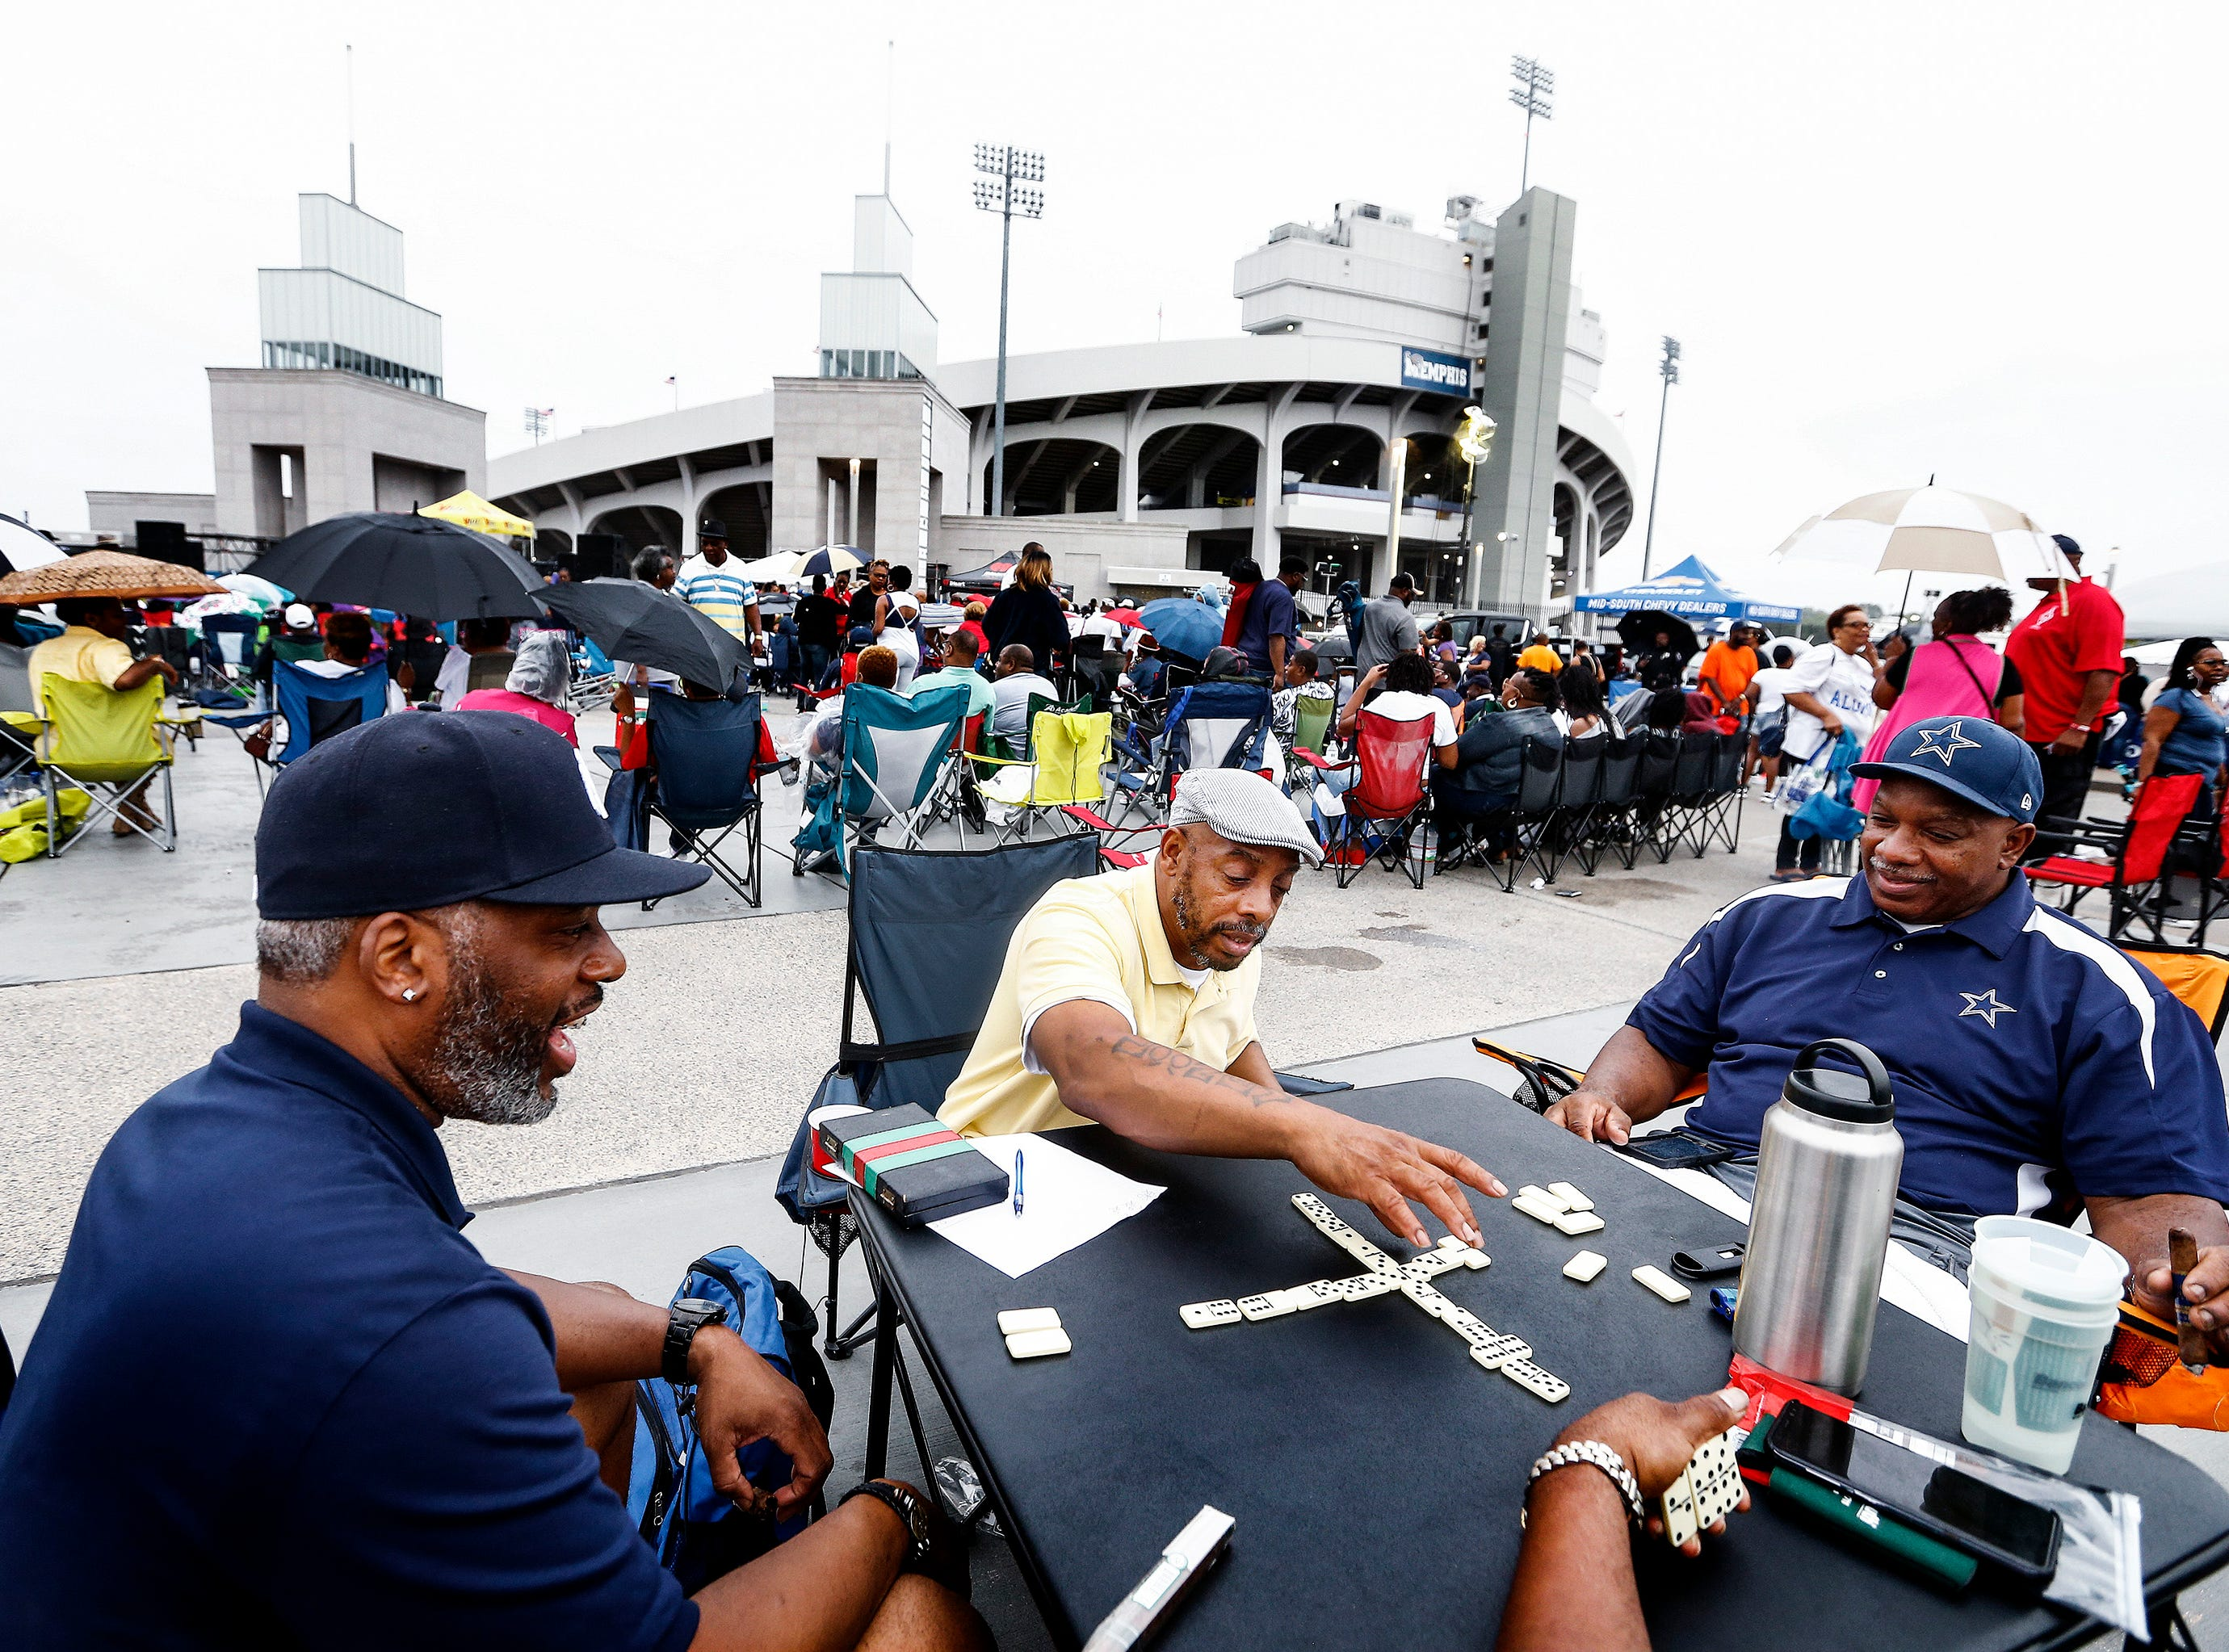 Friends (left to right) Melvin Hill, Lonnie Williams, and twin brother Johnnie Willians play a round of dominos, as they enjoy themselves during the Tom Joyner Morning Show, as they celebrate the 2018 Southern Heritage Classic at The Liberty Bowl Memorial Stadium, Friday morning.